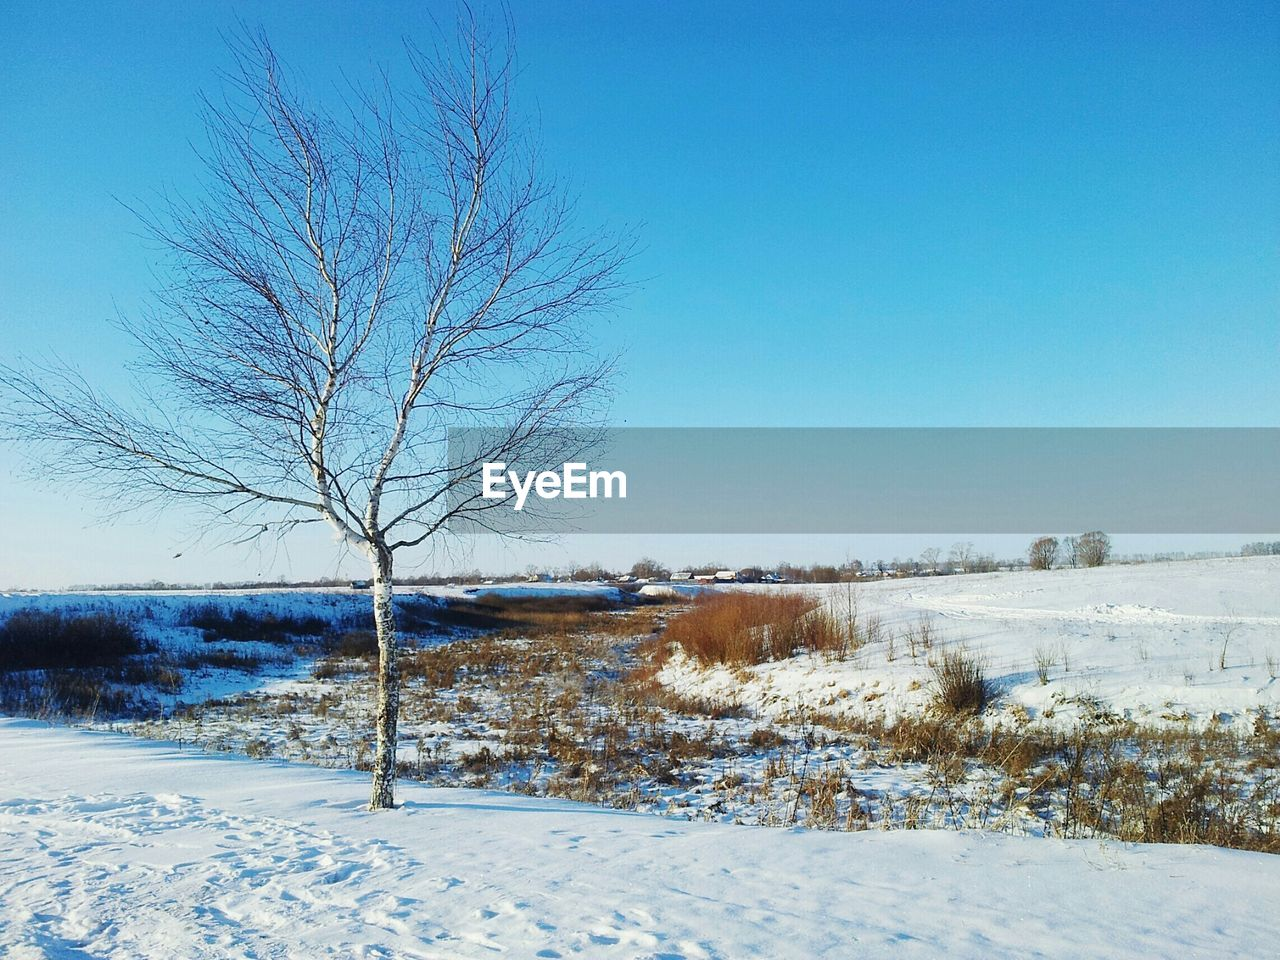 winter, bare tree, cold temperature, snow, tranquil scene, tranquility, white, scenics, landscape, nature, blue, beauty in nature, solitude, white color, clear sky, no people, tree, day, outdoors, branch, sky